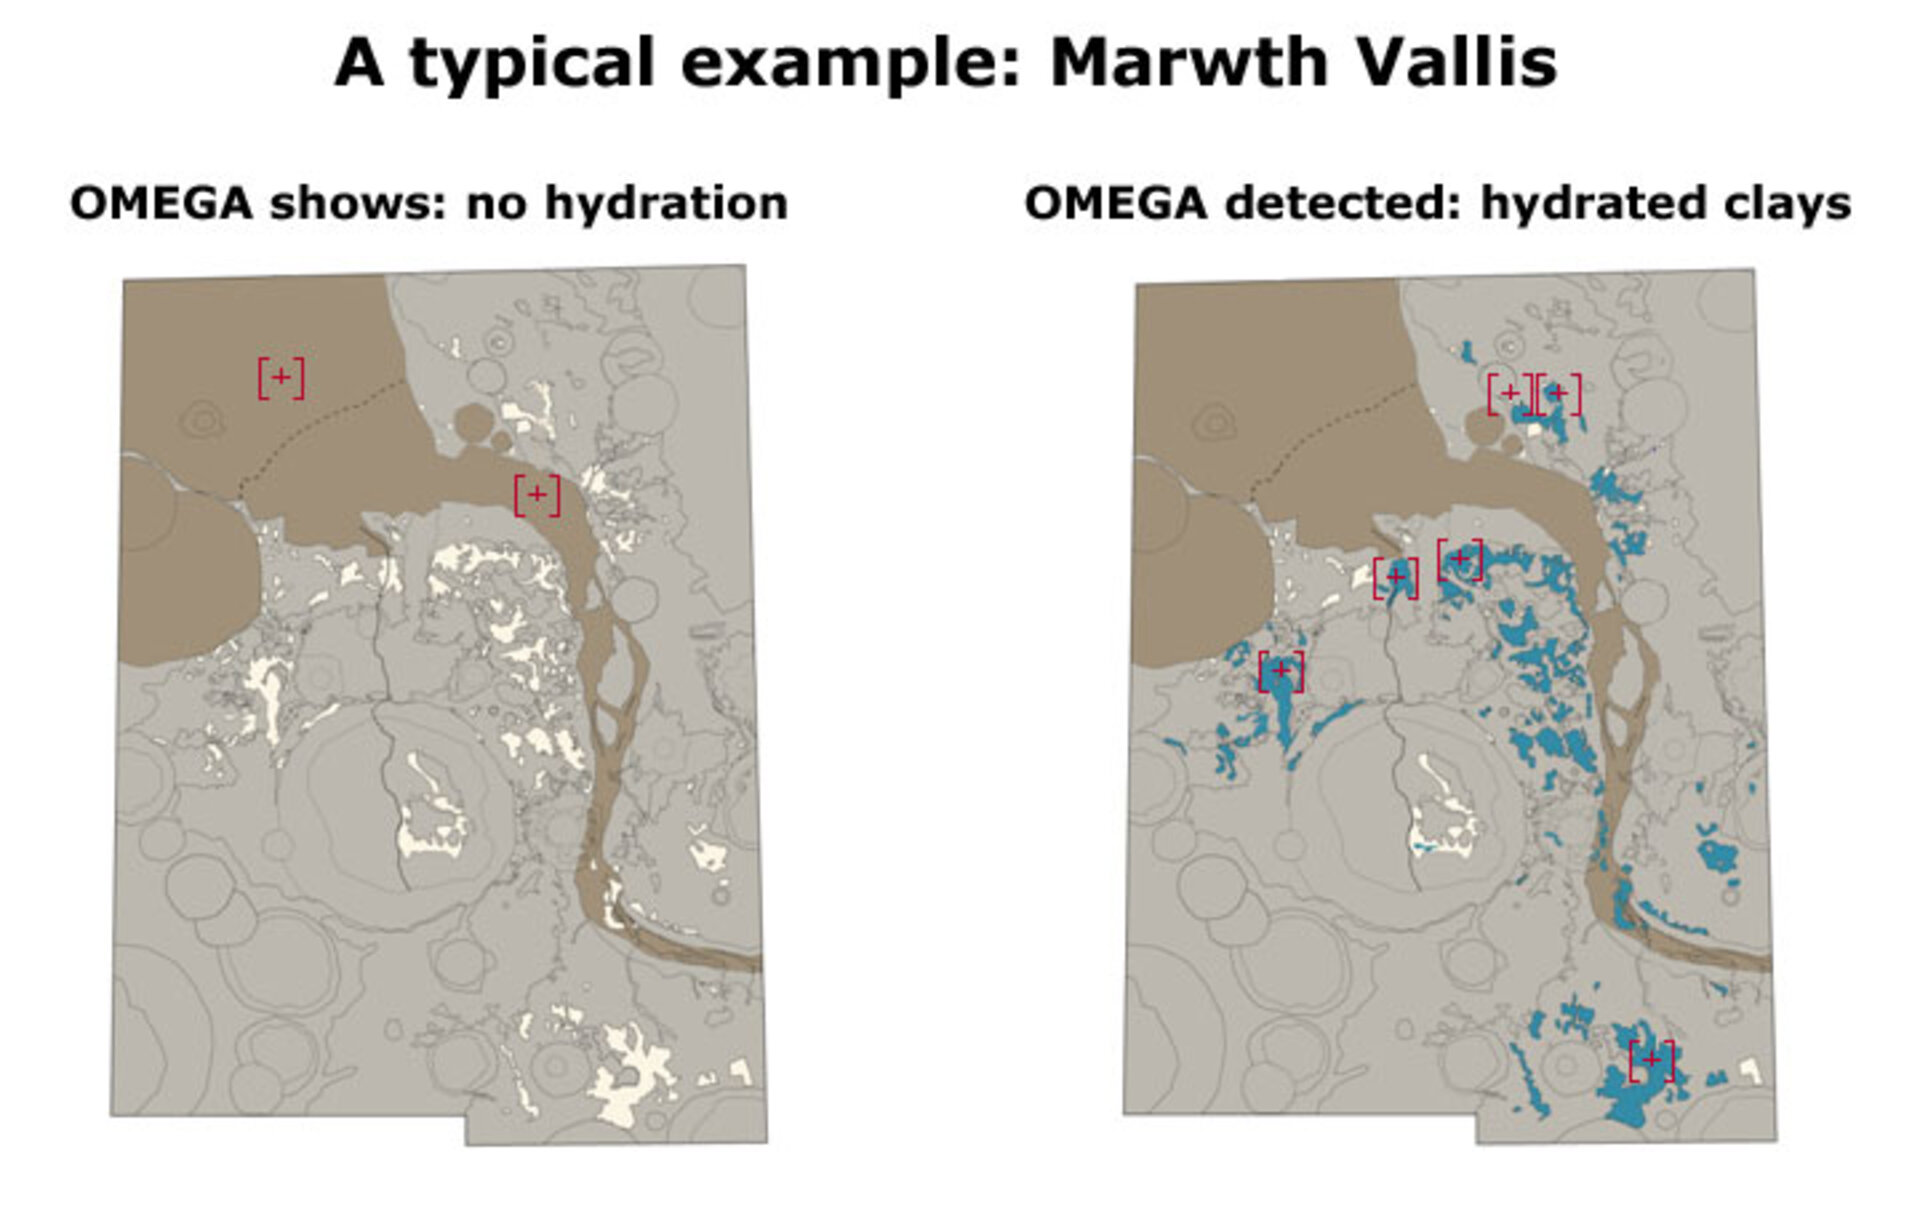 In Marwth Vallis, OMEGA shows no hydration (left); OMEGA detected hydrated clays (right)